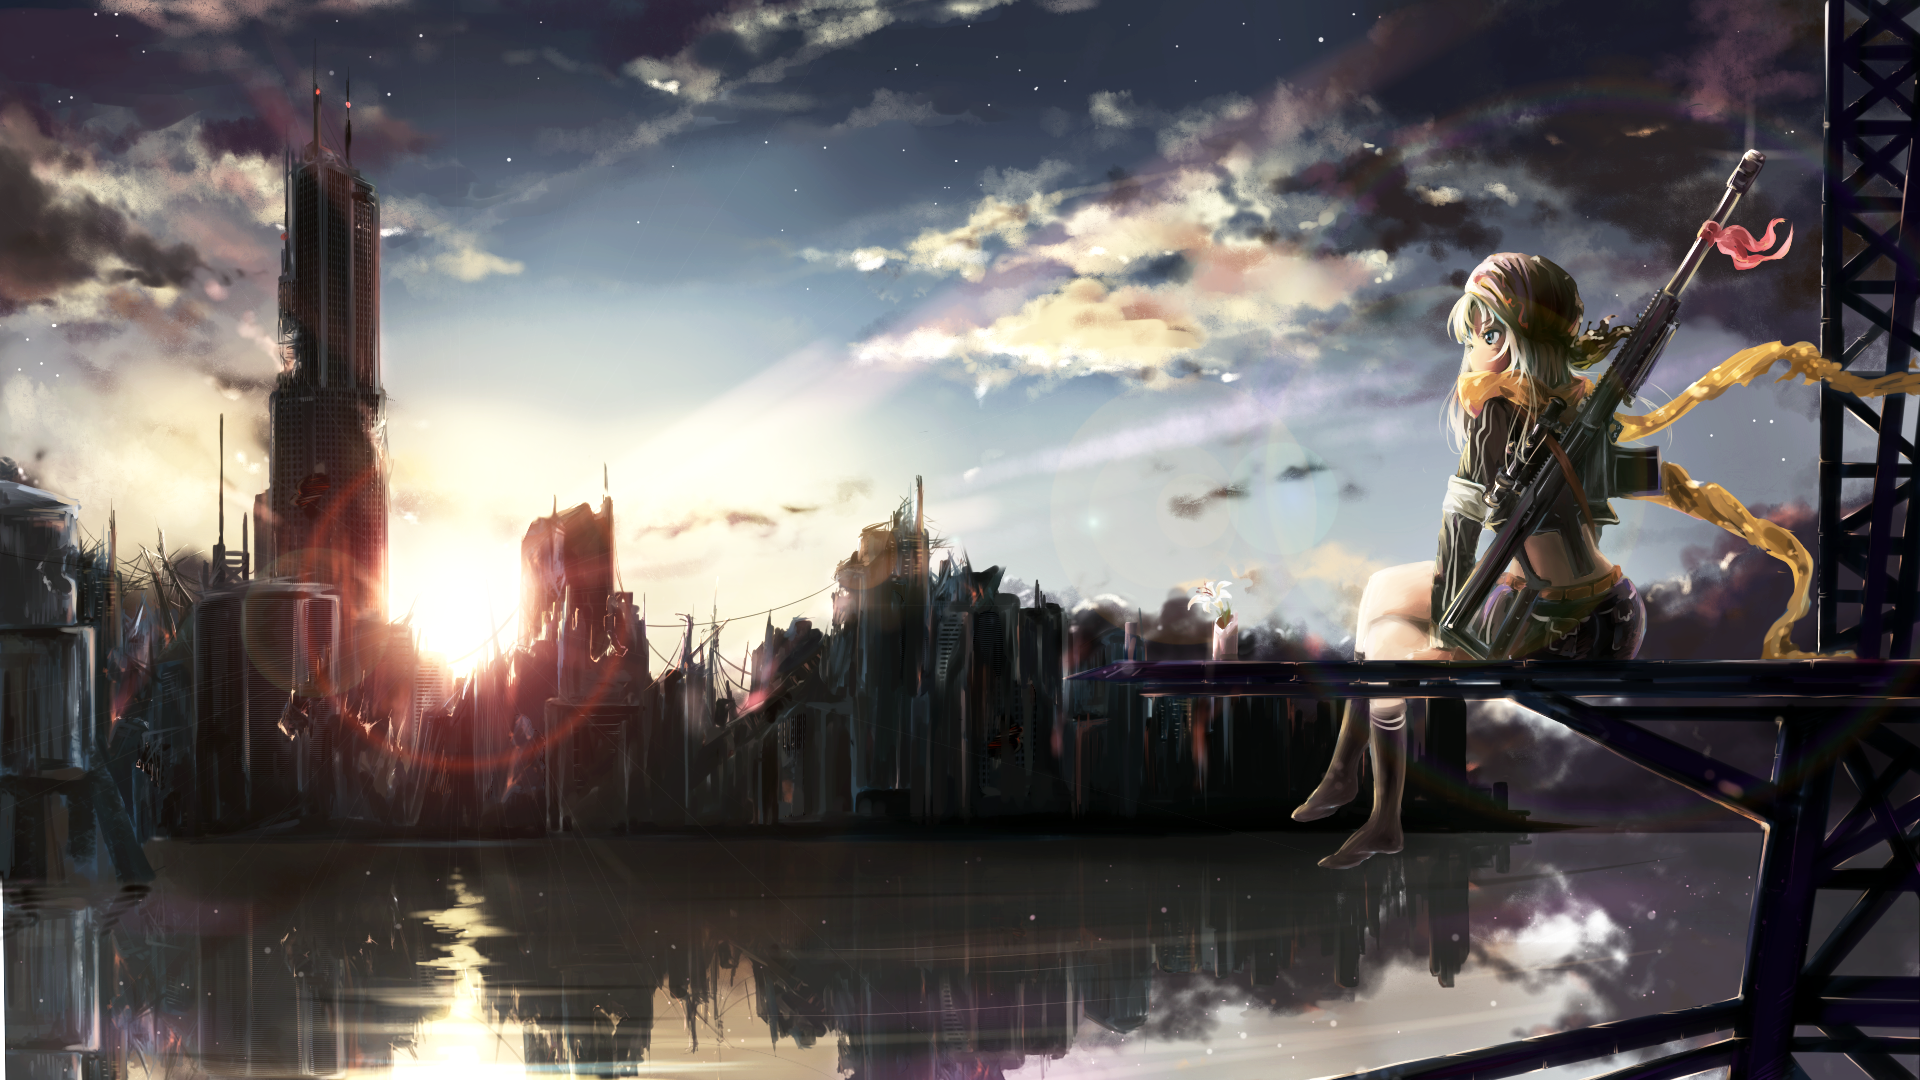 Anime-Original-Girl-City-Ruin-Post-Apocalyptic-Rifle-Weapon-Reflection-wallpaper-wpc9202442